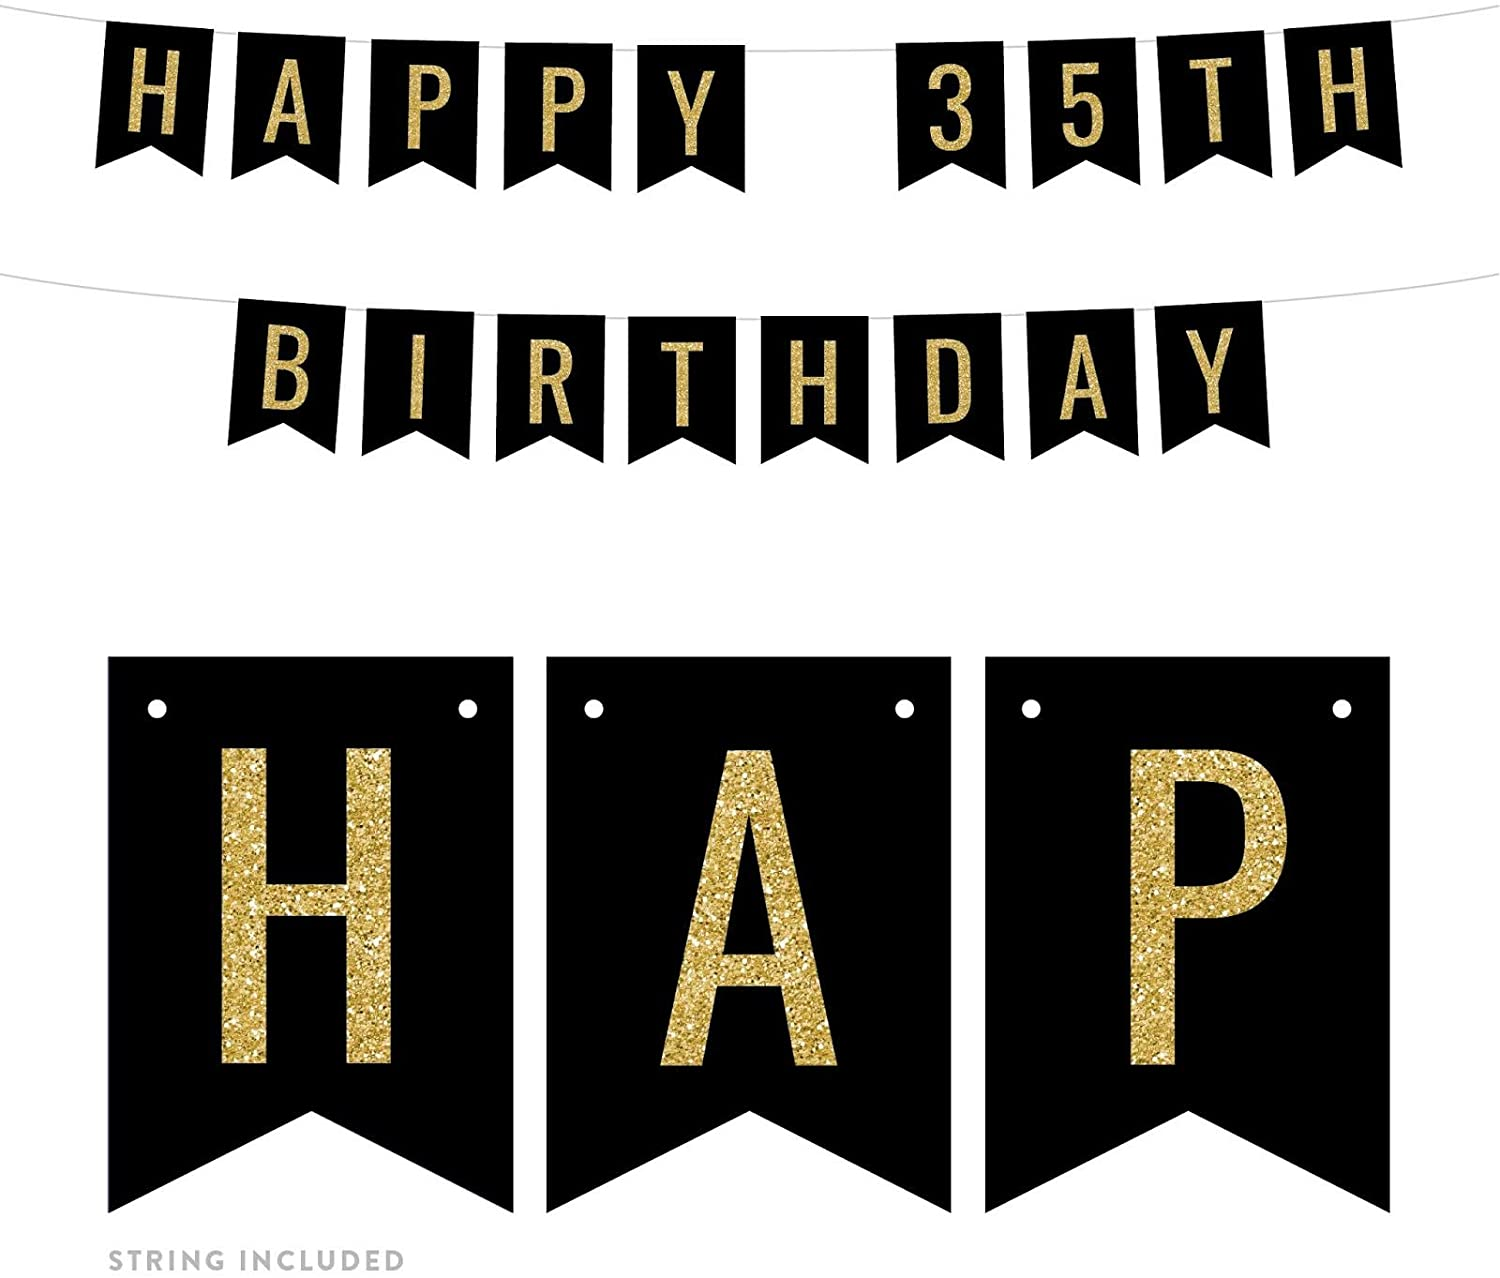 Andaz Press Faux Gold Glitter on Black Birthday Party Banner Decorations, Happy 35th Birthday, Approx 5-Feet, 1-Set, Milestone Colored Hanging Pennant Decor